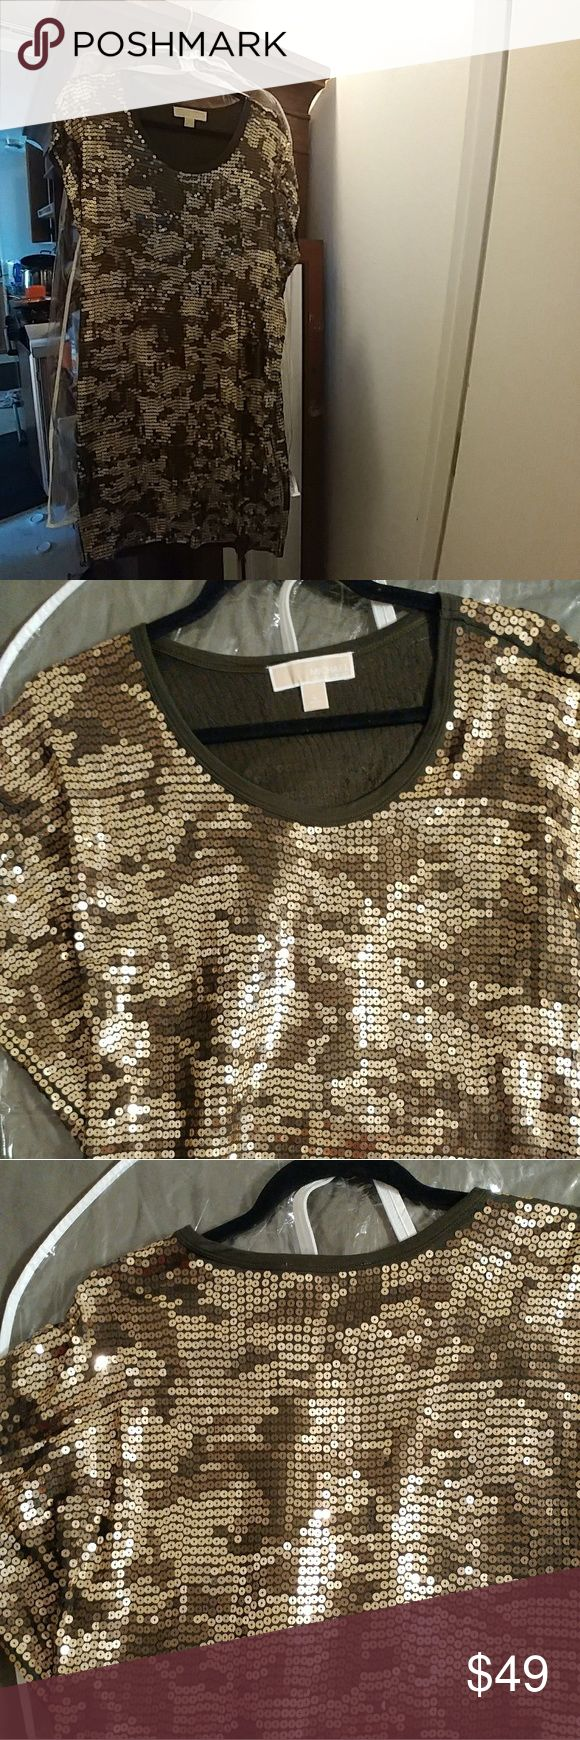 Worn 1 x MICHAEL KORS t shirts style sequin dress Gorgeous  classic style.Olive green dress with golden,chocolate,and silvery sequins that layflat on the fabric so it's not heat,or as dressy.It can be worn as a tunic with leggings,or as a sheath dressSize S-L can wear it depending on how you wAnt to wear it..belted or loose ..its a stunner! I will include the new $5 storage bag. MICHAEL Michael Kors Dresses Midi